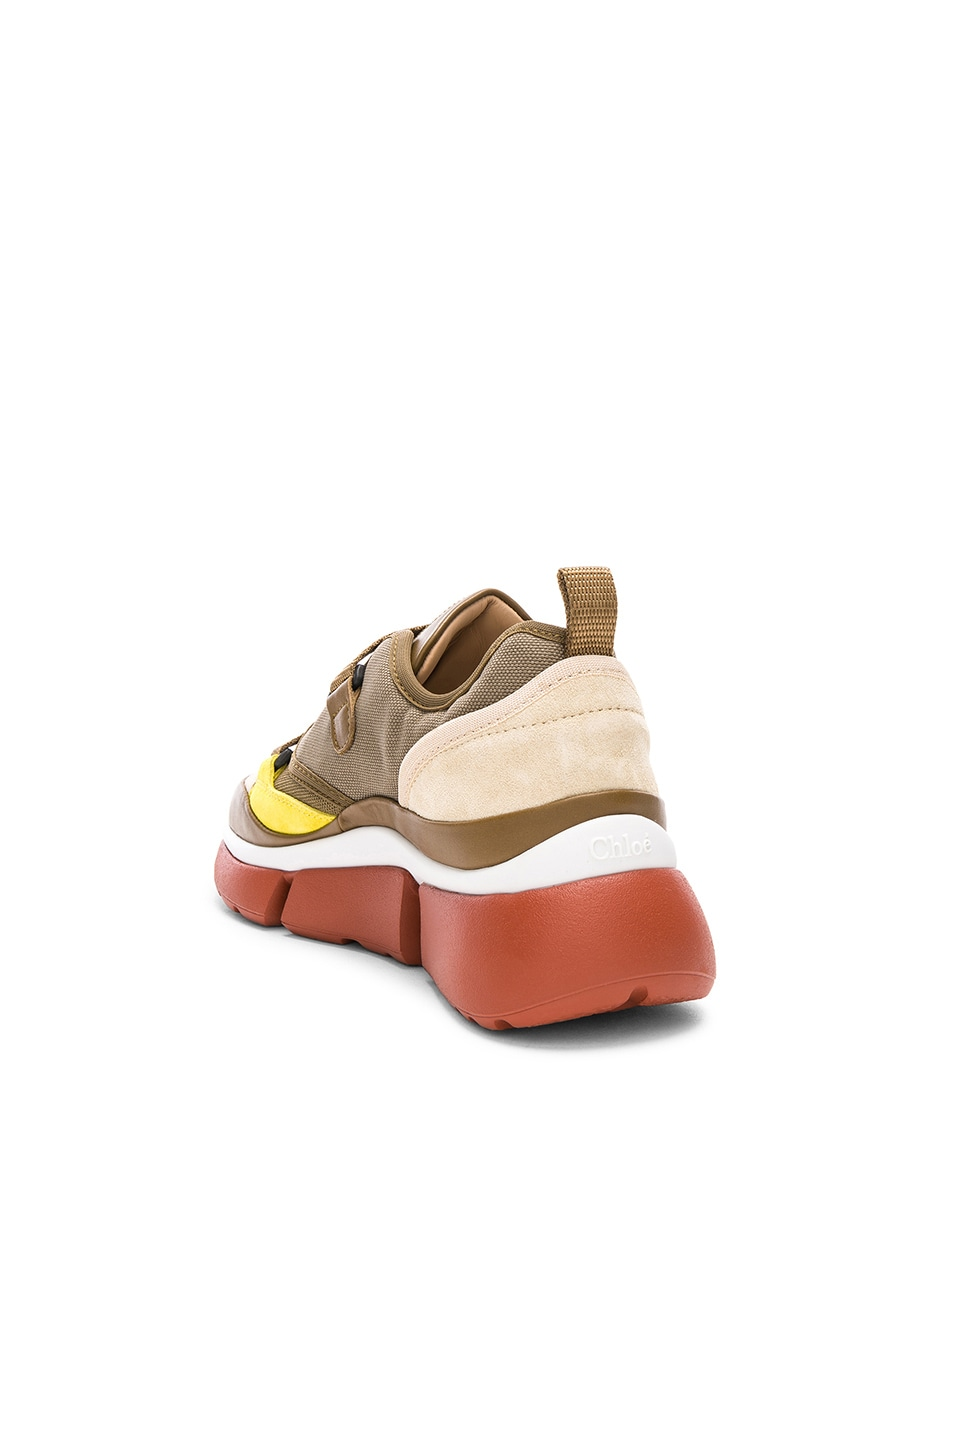 Image 3 of Chloe Sonnie Leather Velcro Strap Sneakers in Sooty Khaki